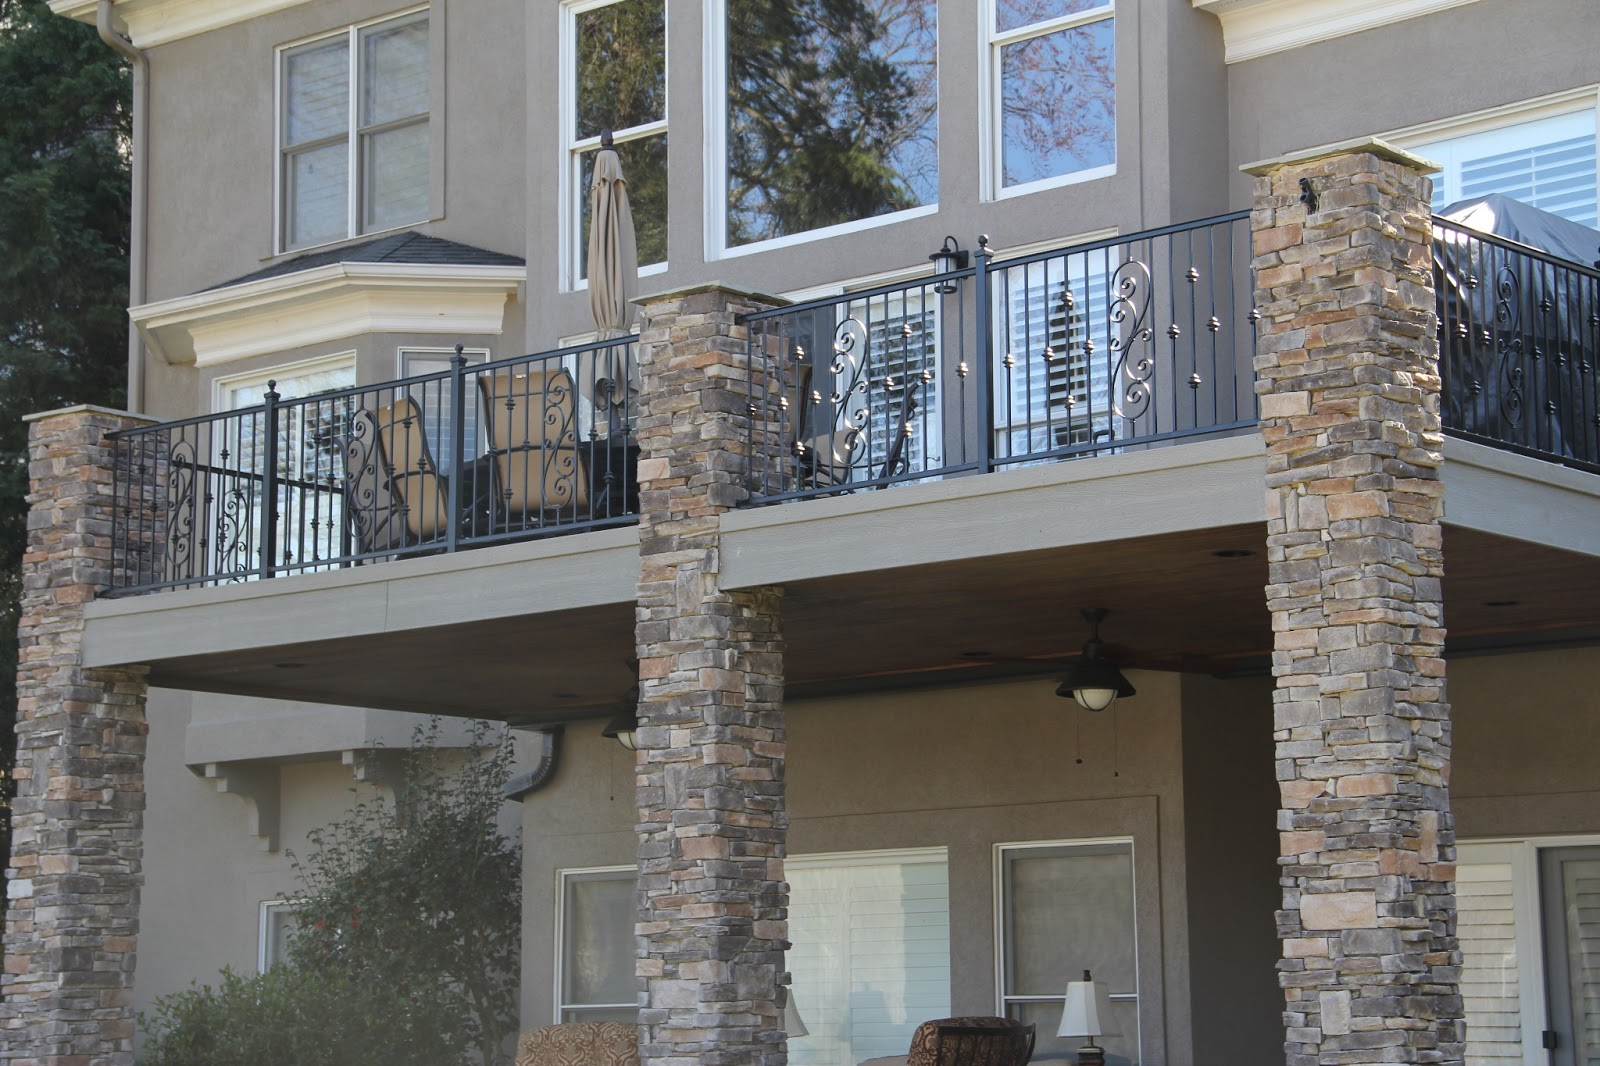 New home designs latest.: Modern homes wrought iron